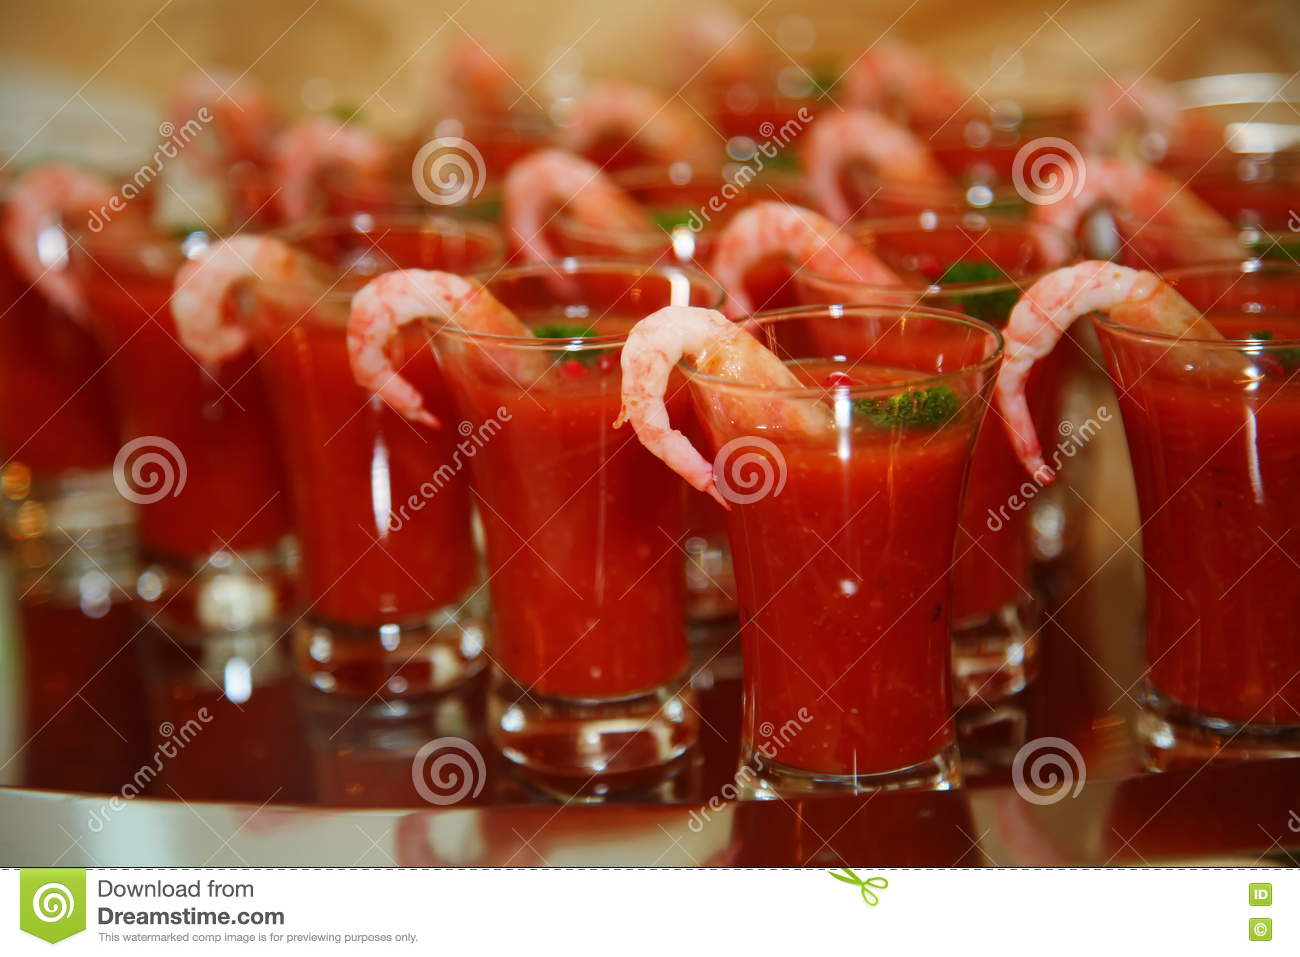 Artistically decorated drink of tomato with vodka and shrimp - is a delicacy from the chef - a dish of venison.